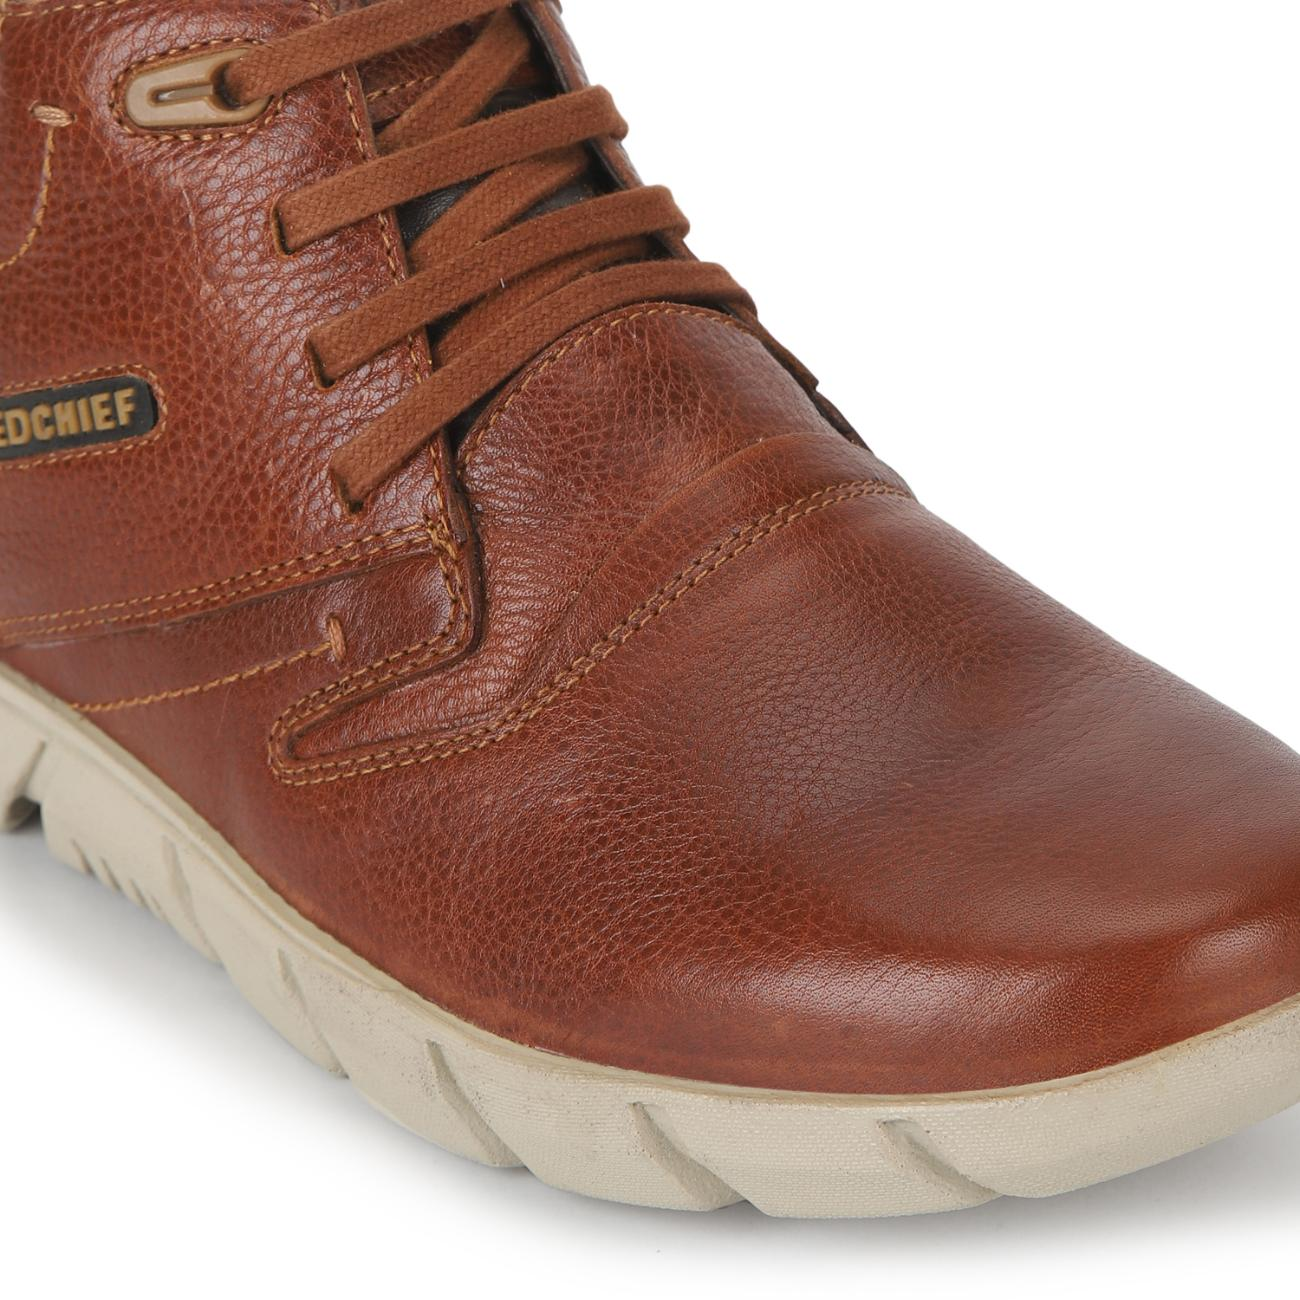 tan casual derby shoes rubber sole